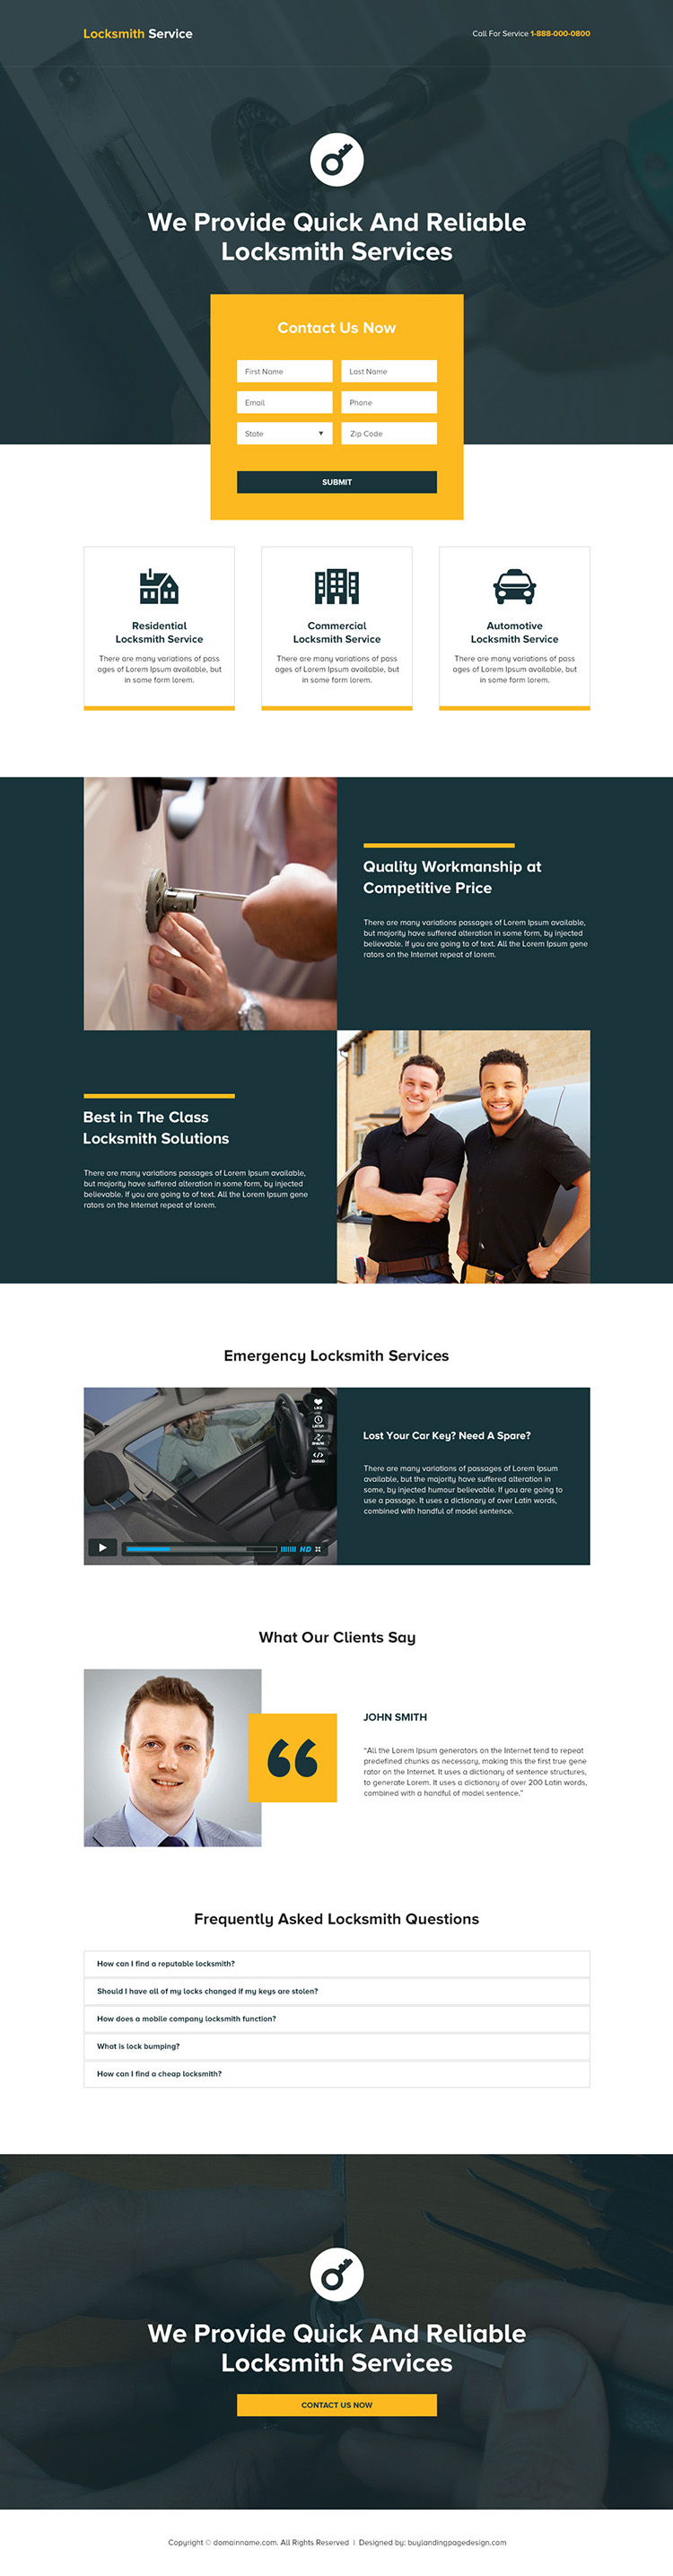 quick and reliable locksmith services landing page